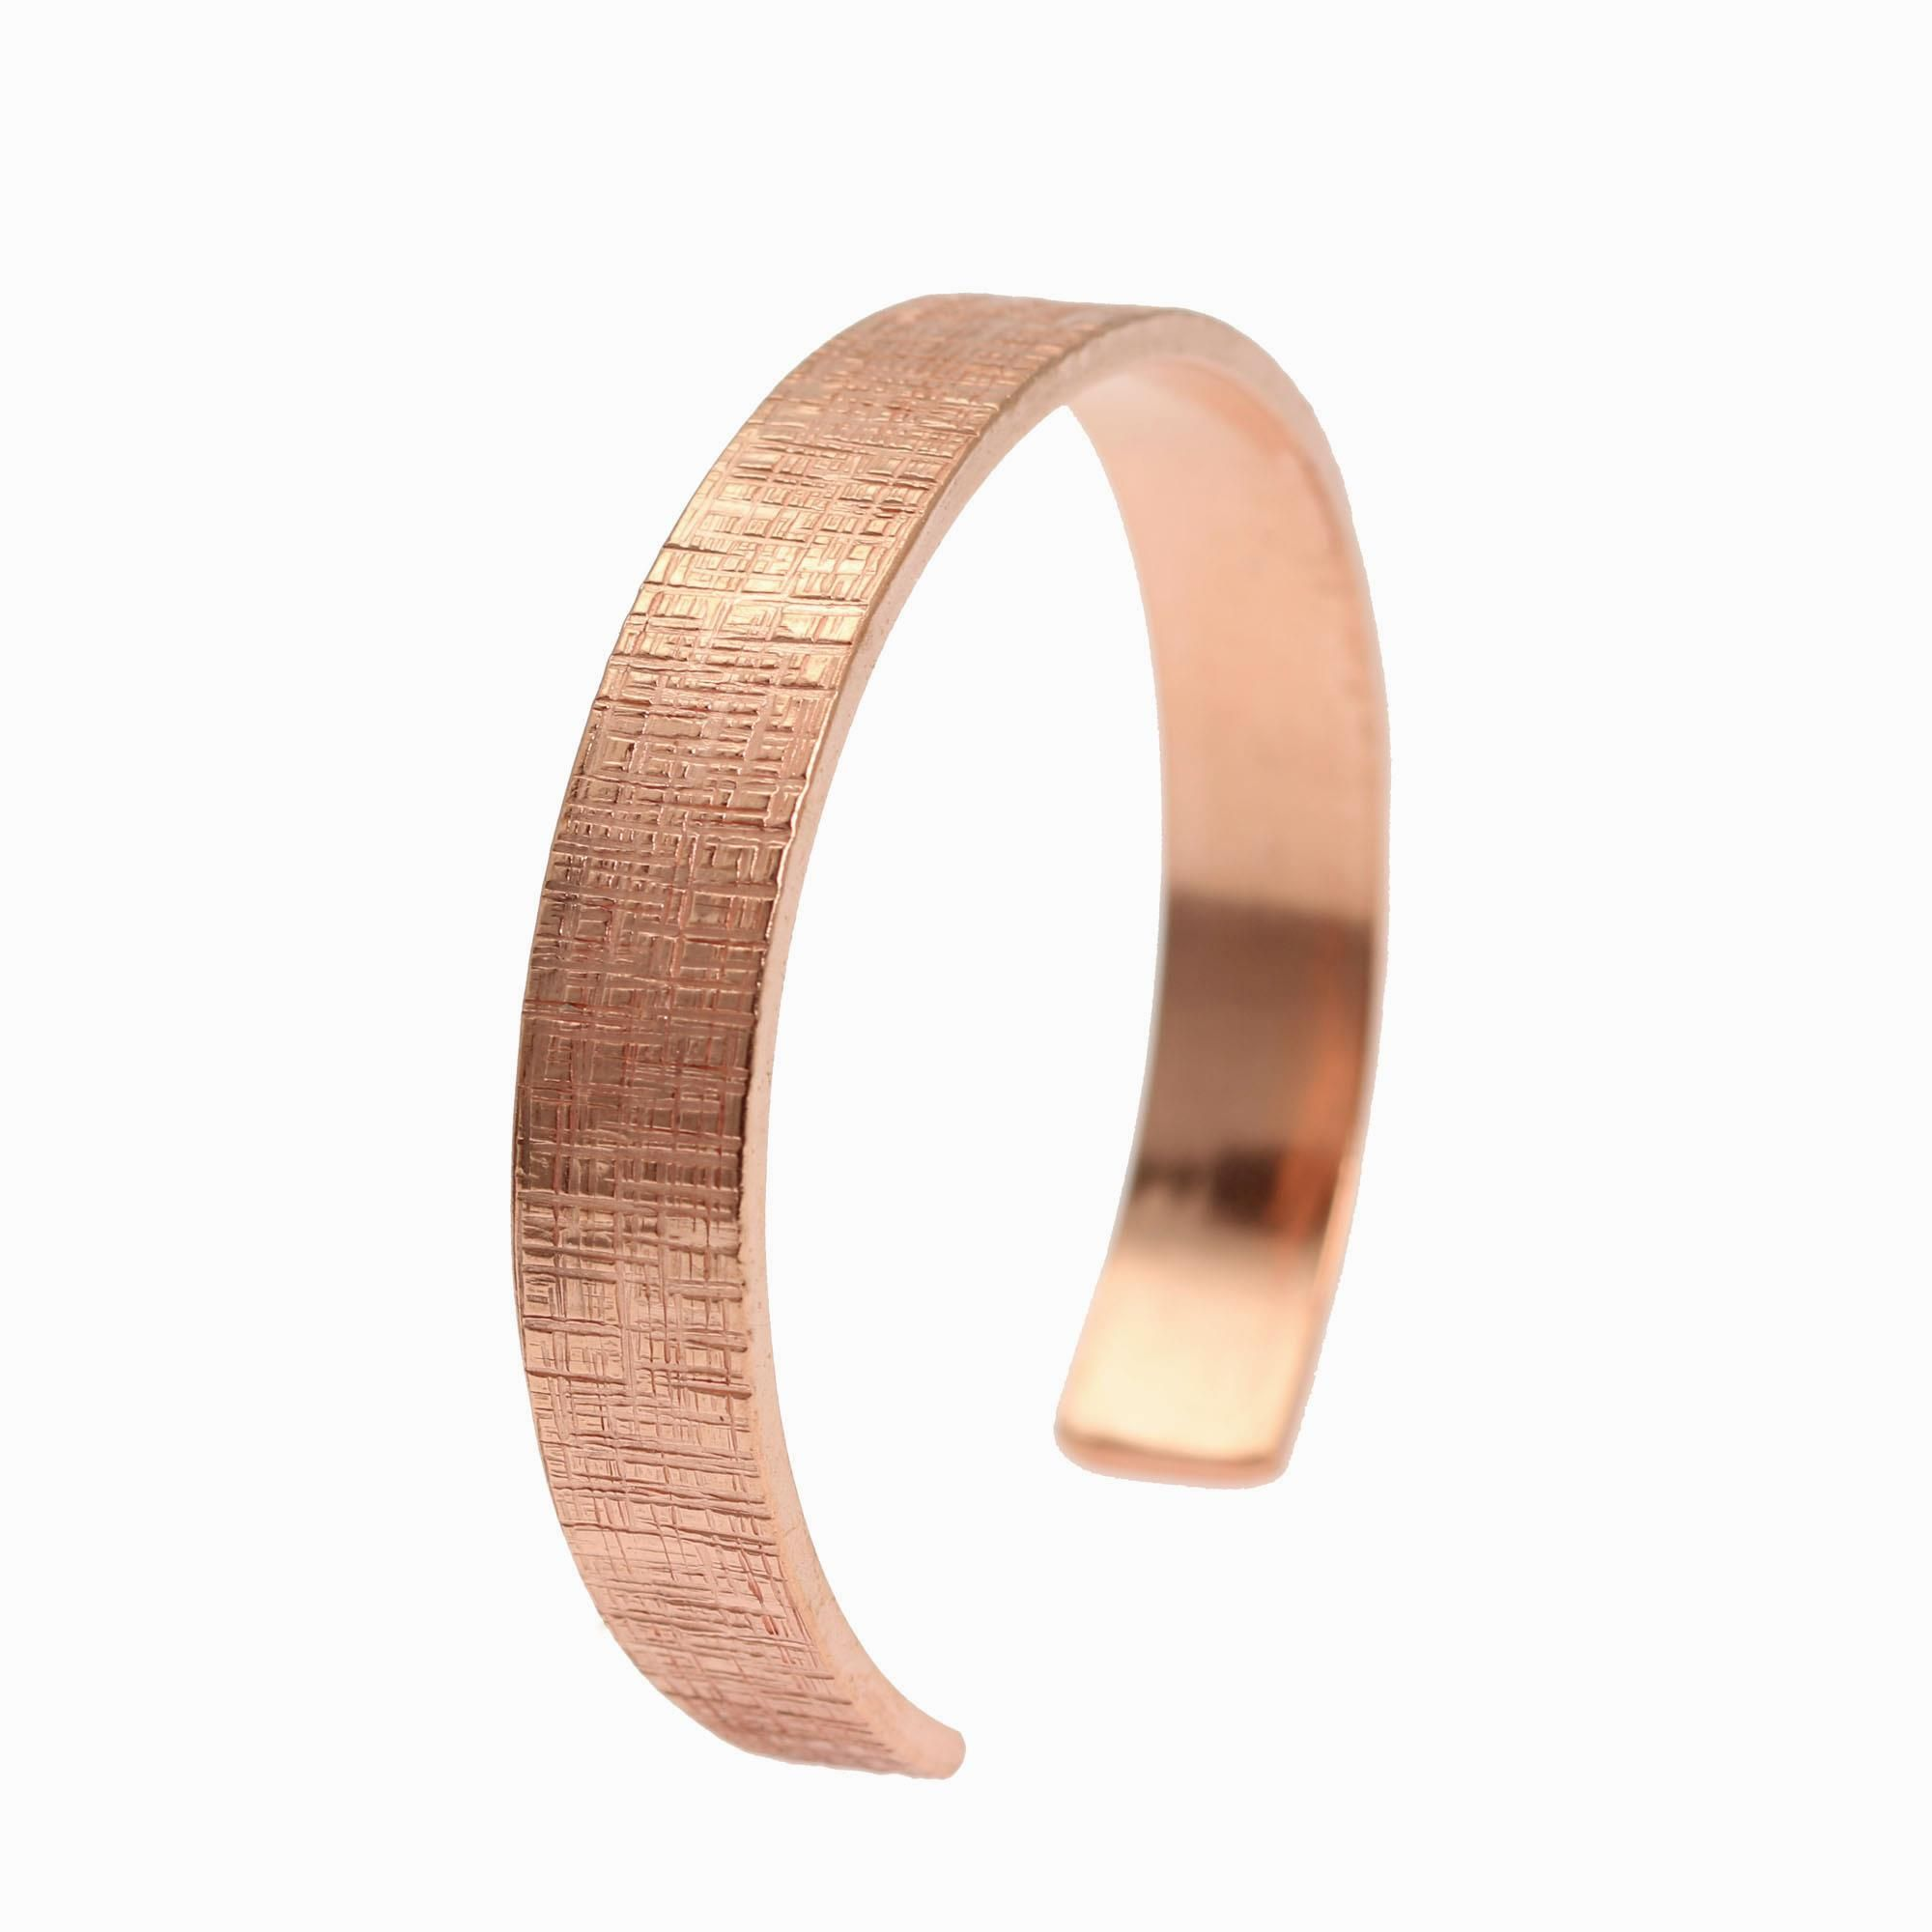 43% OFF! Amazing 10mm Wide Linen Rose Gold Tone Cuff Bracelet Shown by #AmazonPrime #Copper http://www.amazon.com/dp/B01AMSY7OY